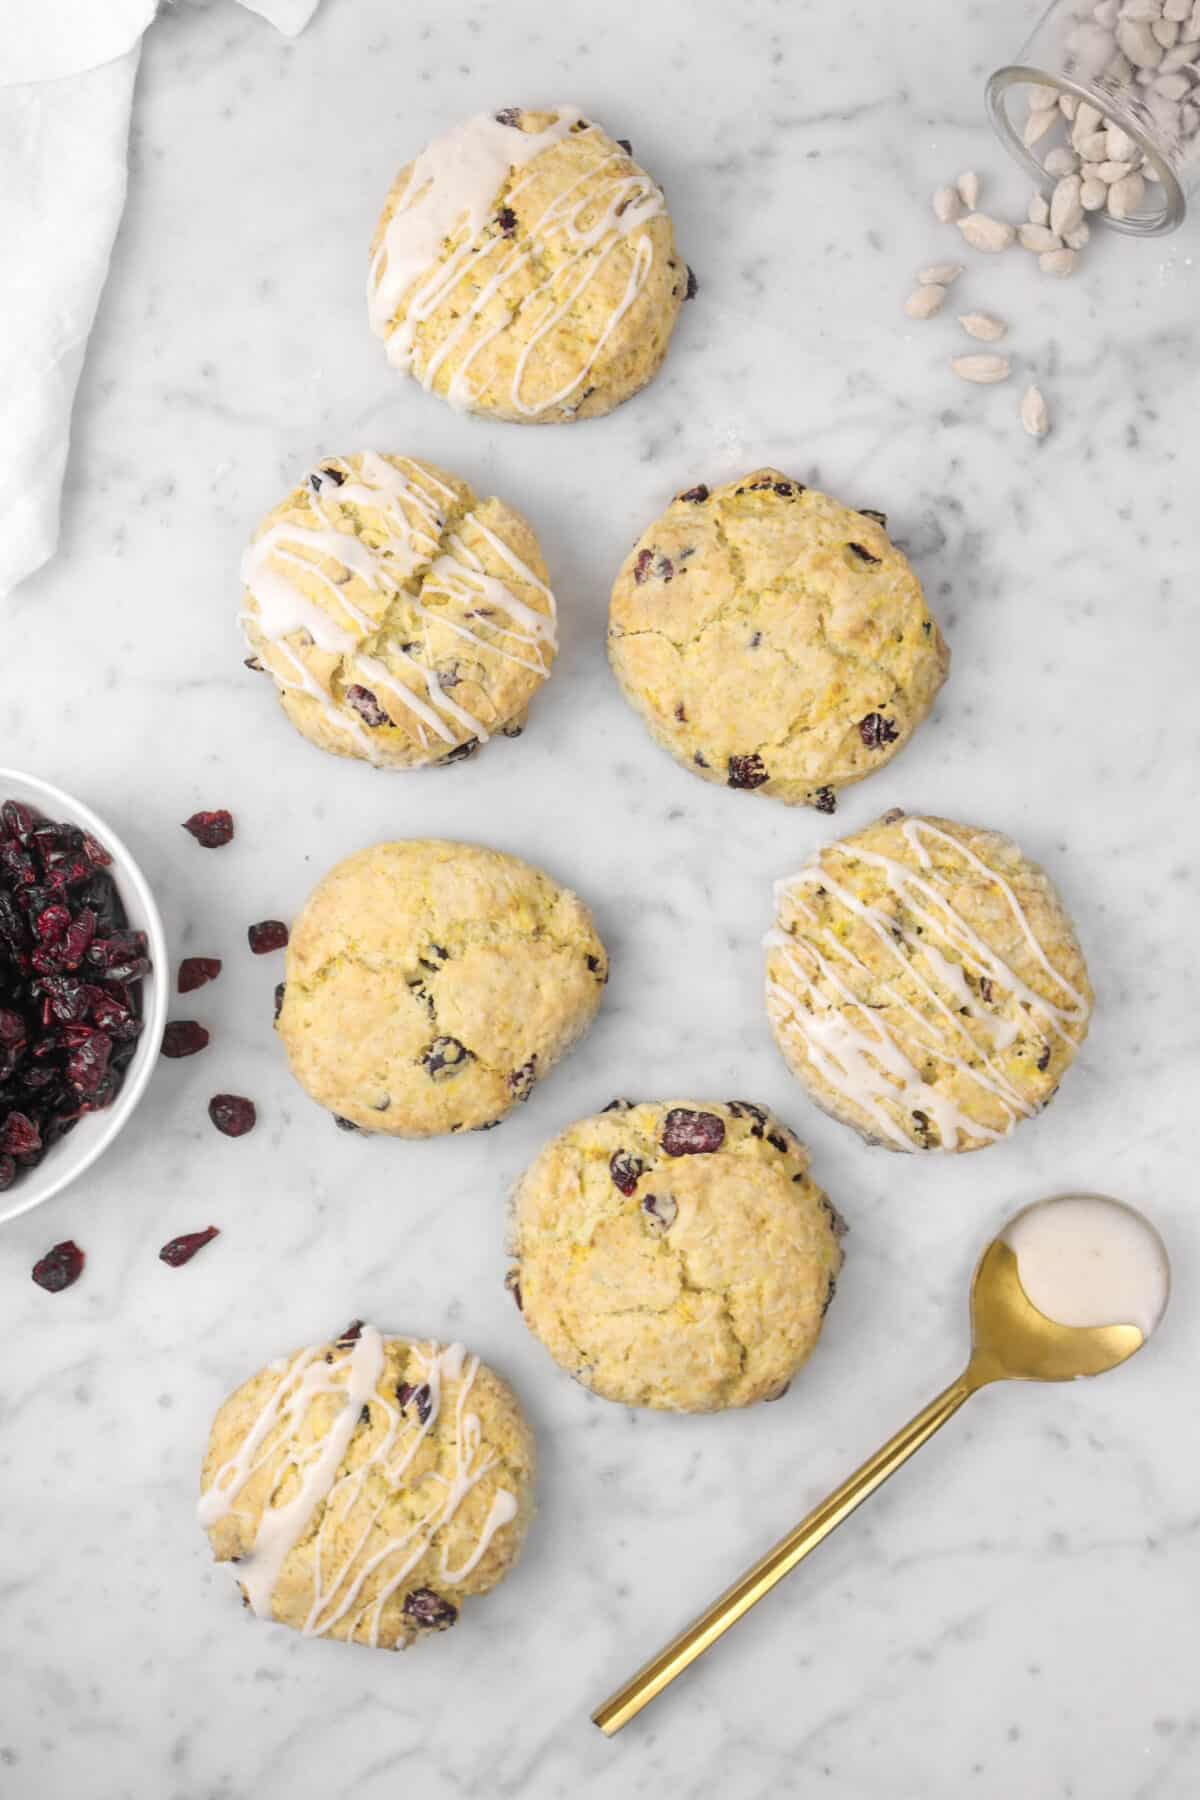 seven scones on a marble counter with cranberries, cardamom pods, and a gold spoon